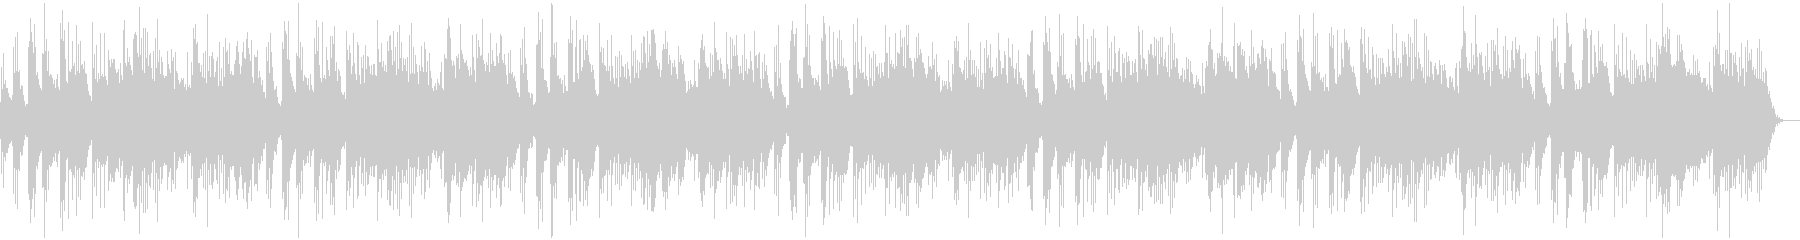 A calm and somewhat boring piano melody's unreproduced waveform